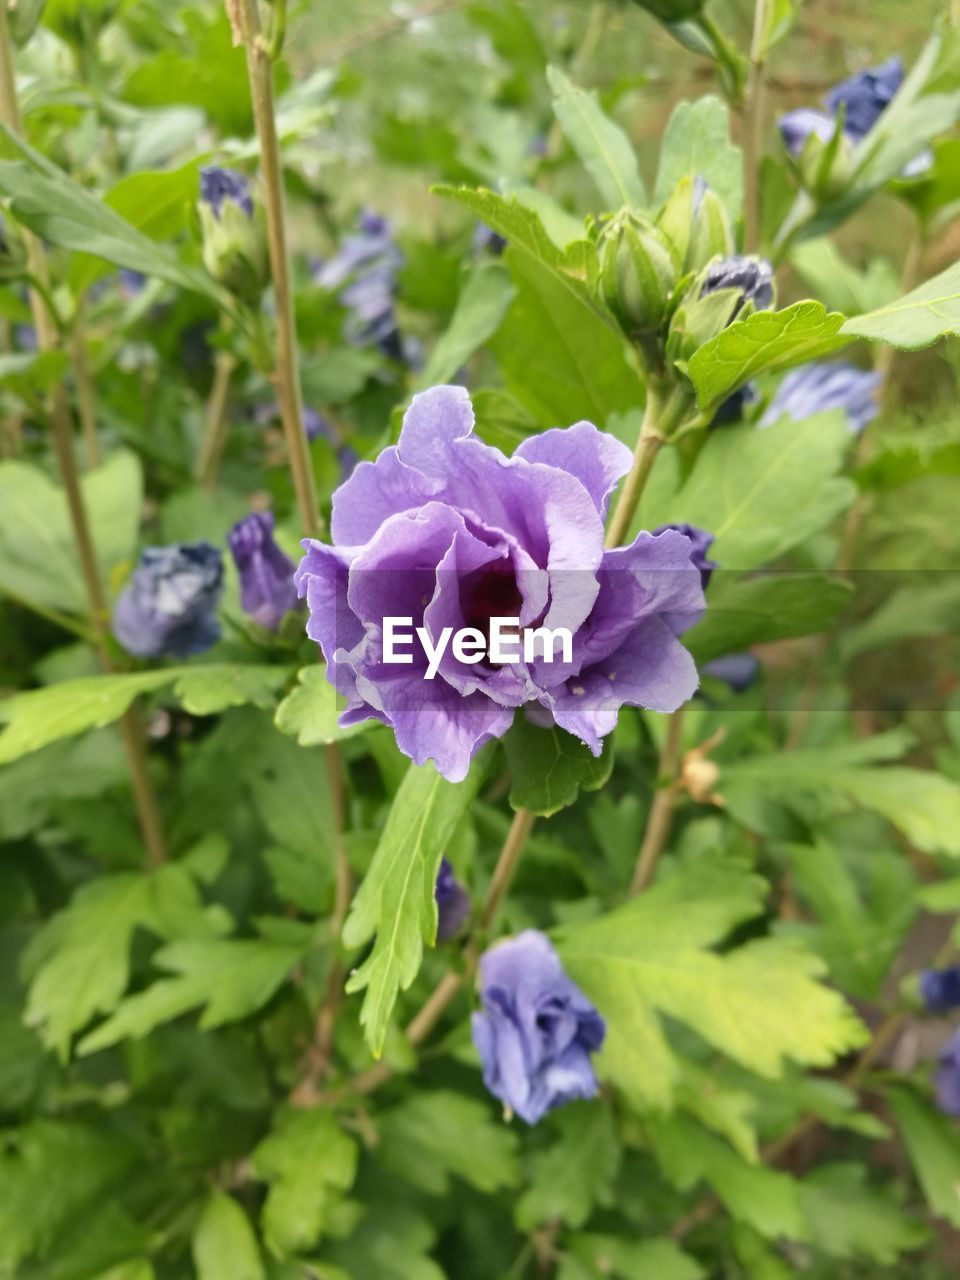 flower, flowering plant, vulnerability, plant, beauty in nature, fragility, freshness, purple, petal, growth, close-up, flower head, inflorescence, nature, day, plant part, leaf, focus on foreground, no people, green color, outdoors